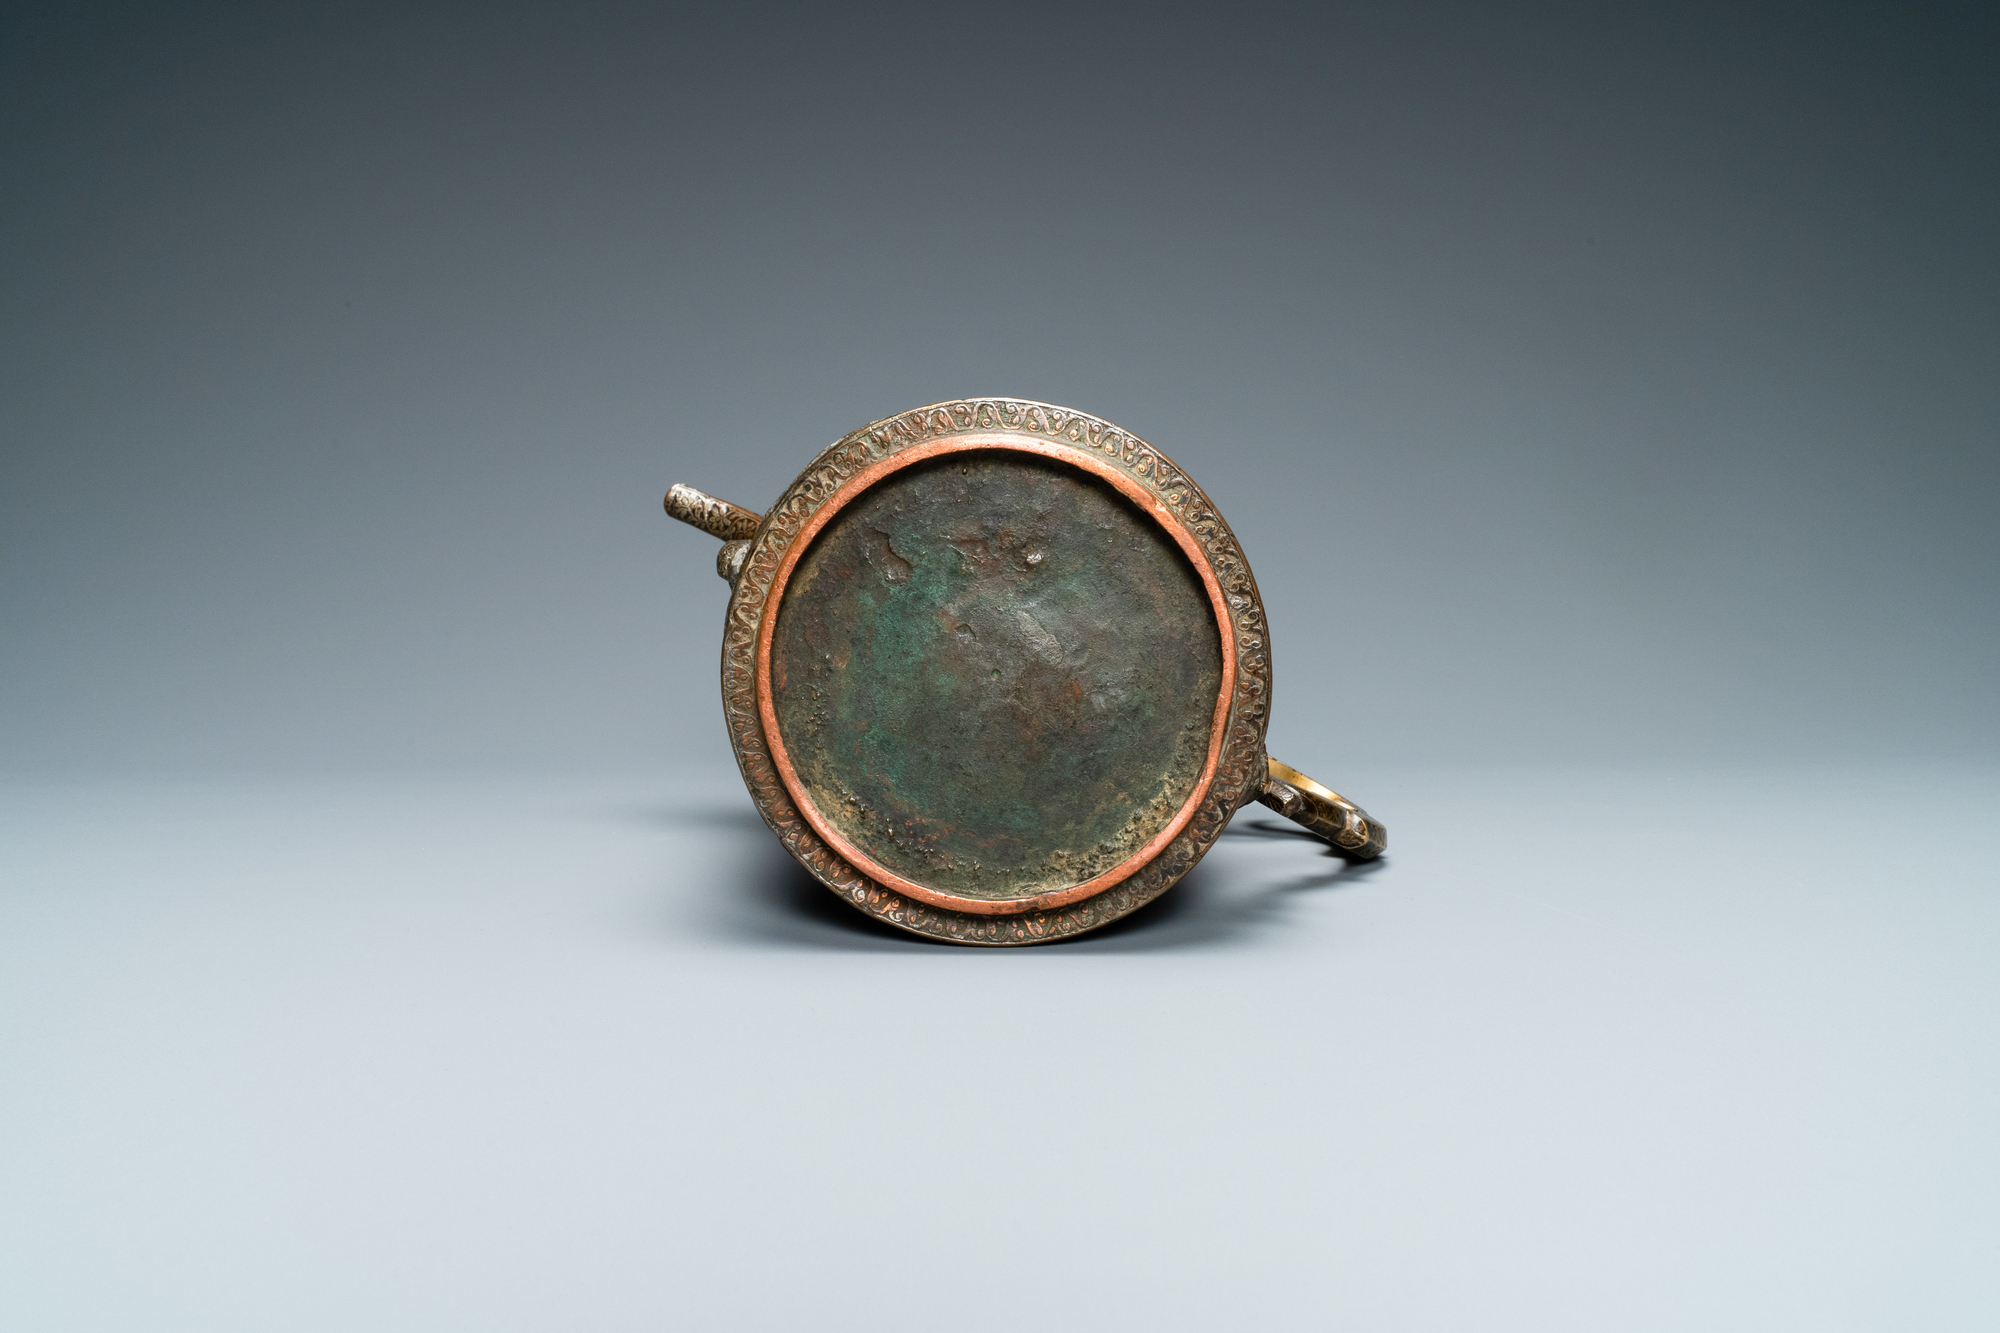 A Safavid parcel-gilt and tinned copper mug and cover, Persia, 17/18th C. - Image 7 of 7